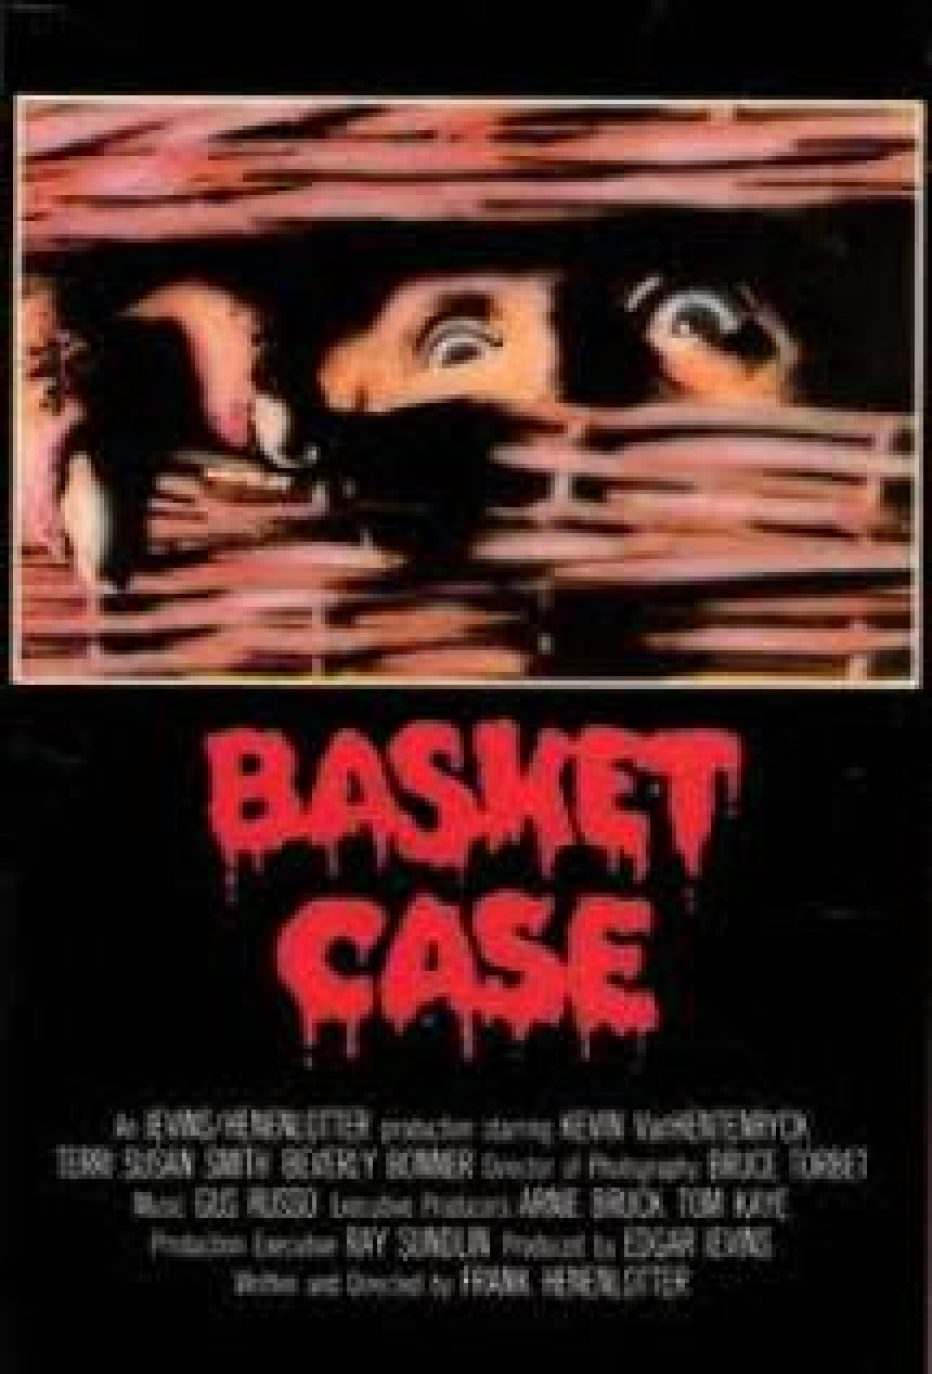 Basket Case (1982) Trailer